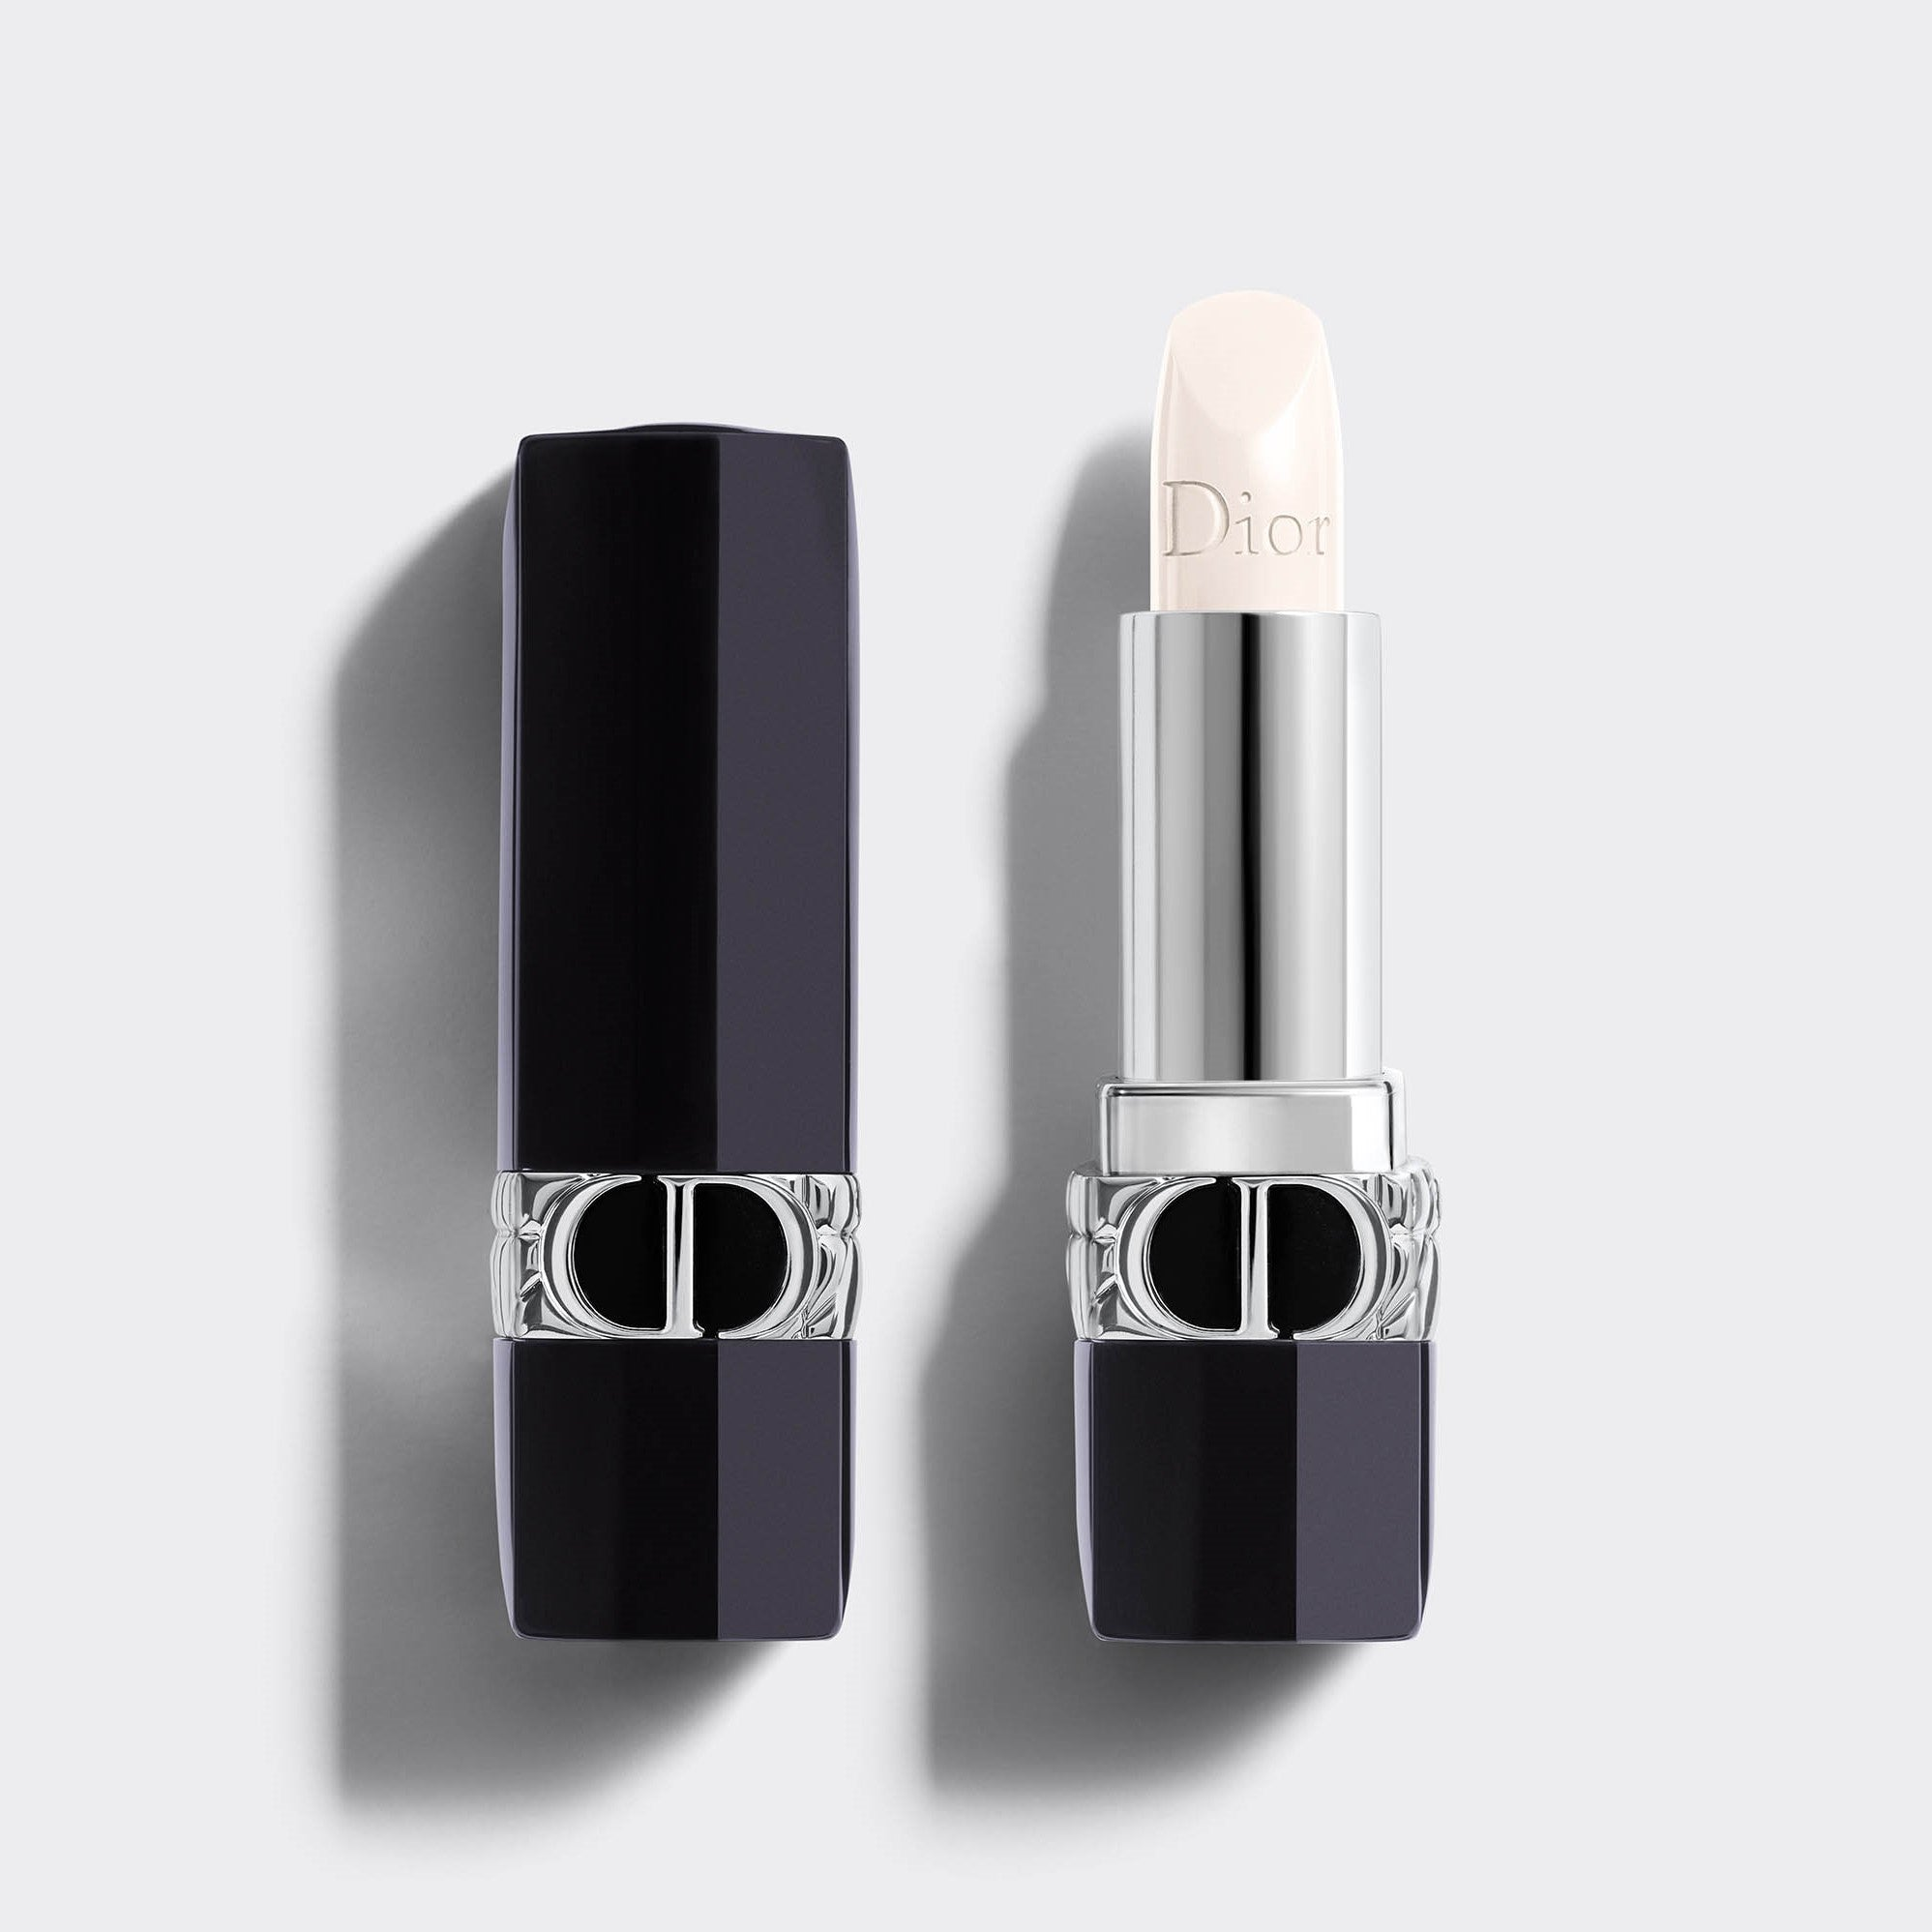 ROUGE DIOR SATIN BALM | Floral Care Lip Balm - Natural Couture Color - Refillable